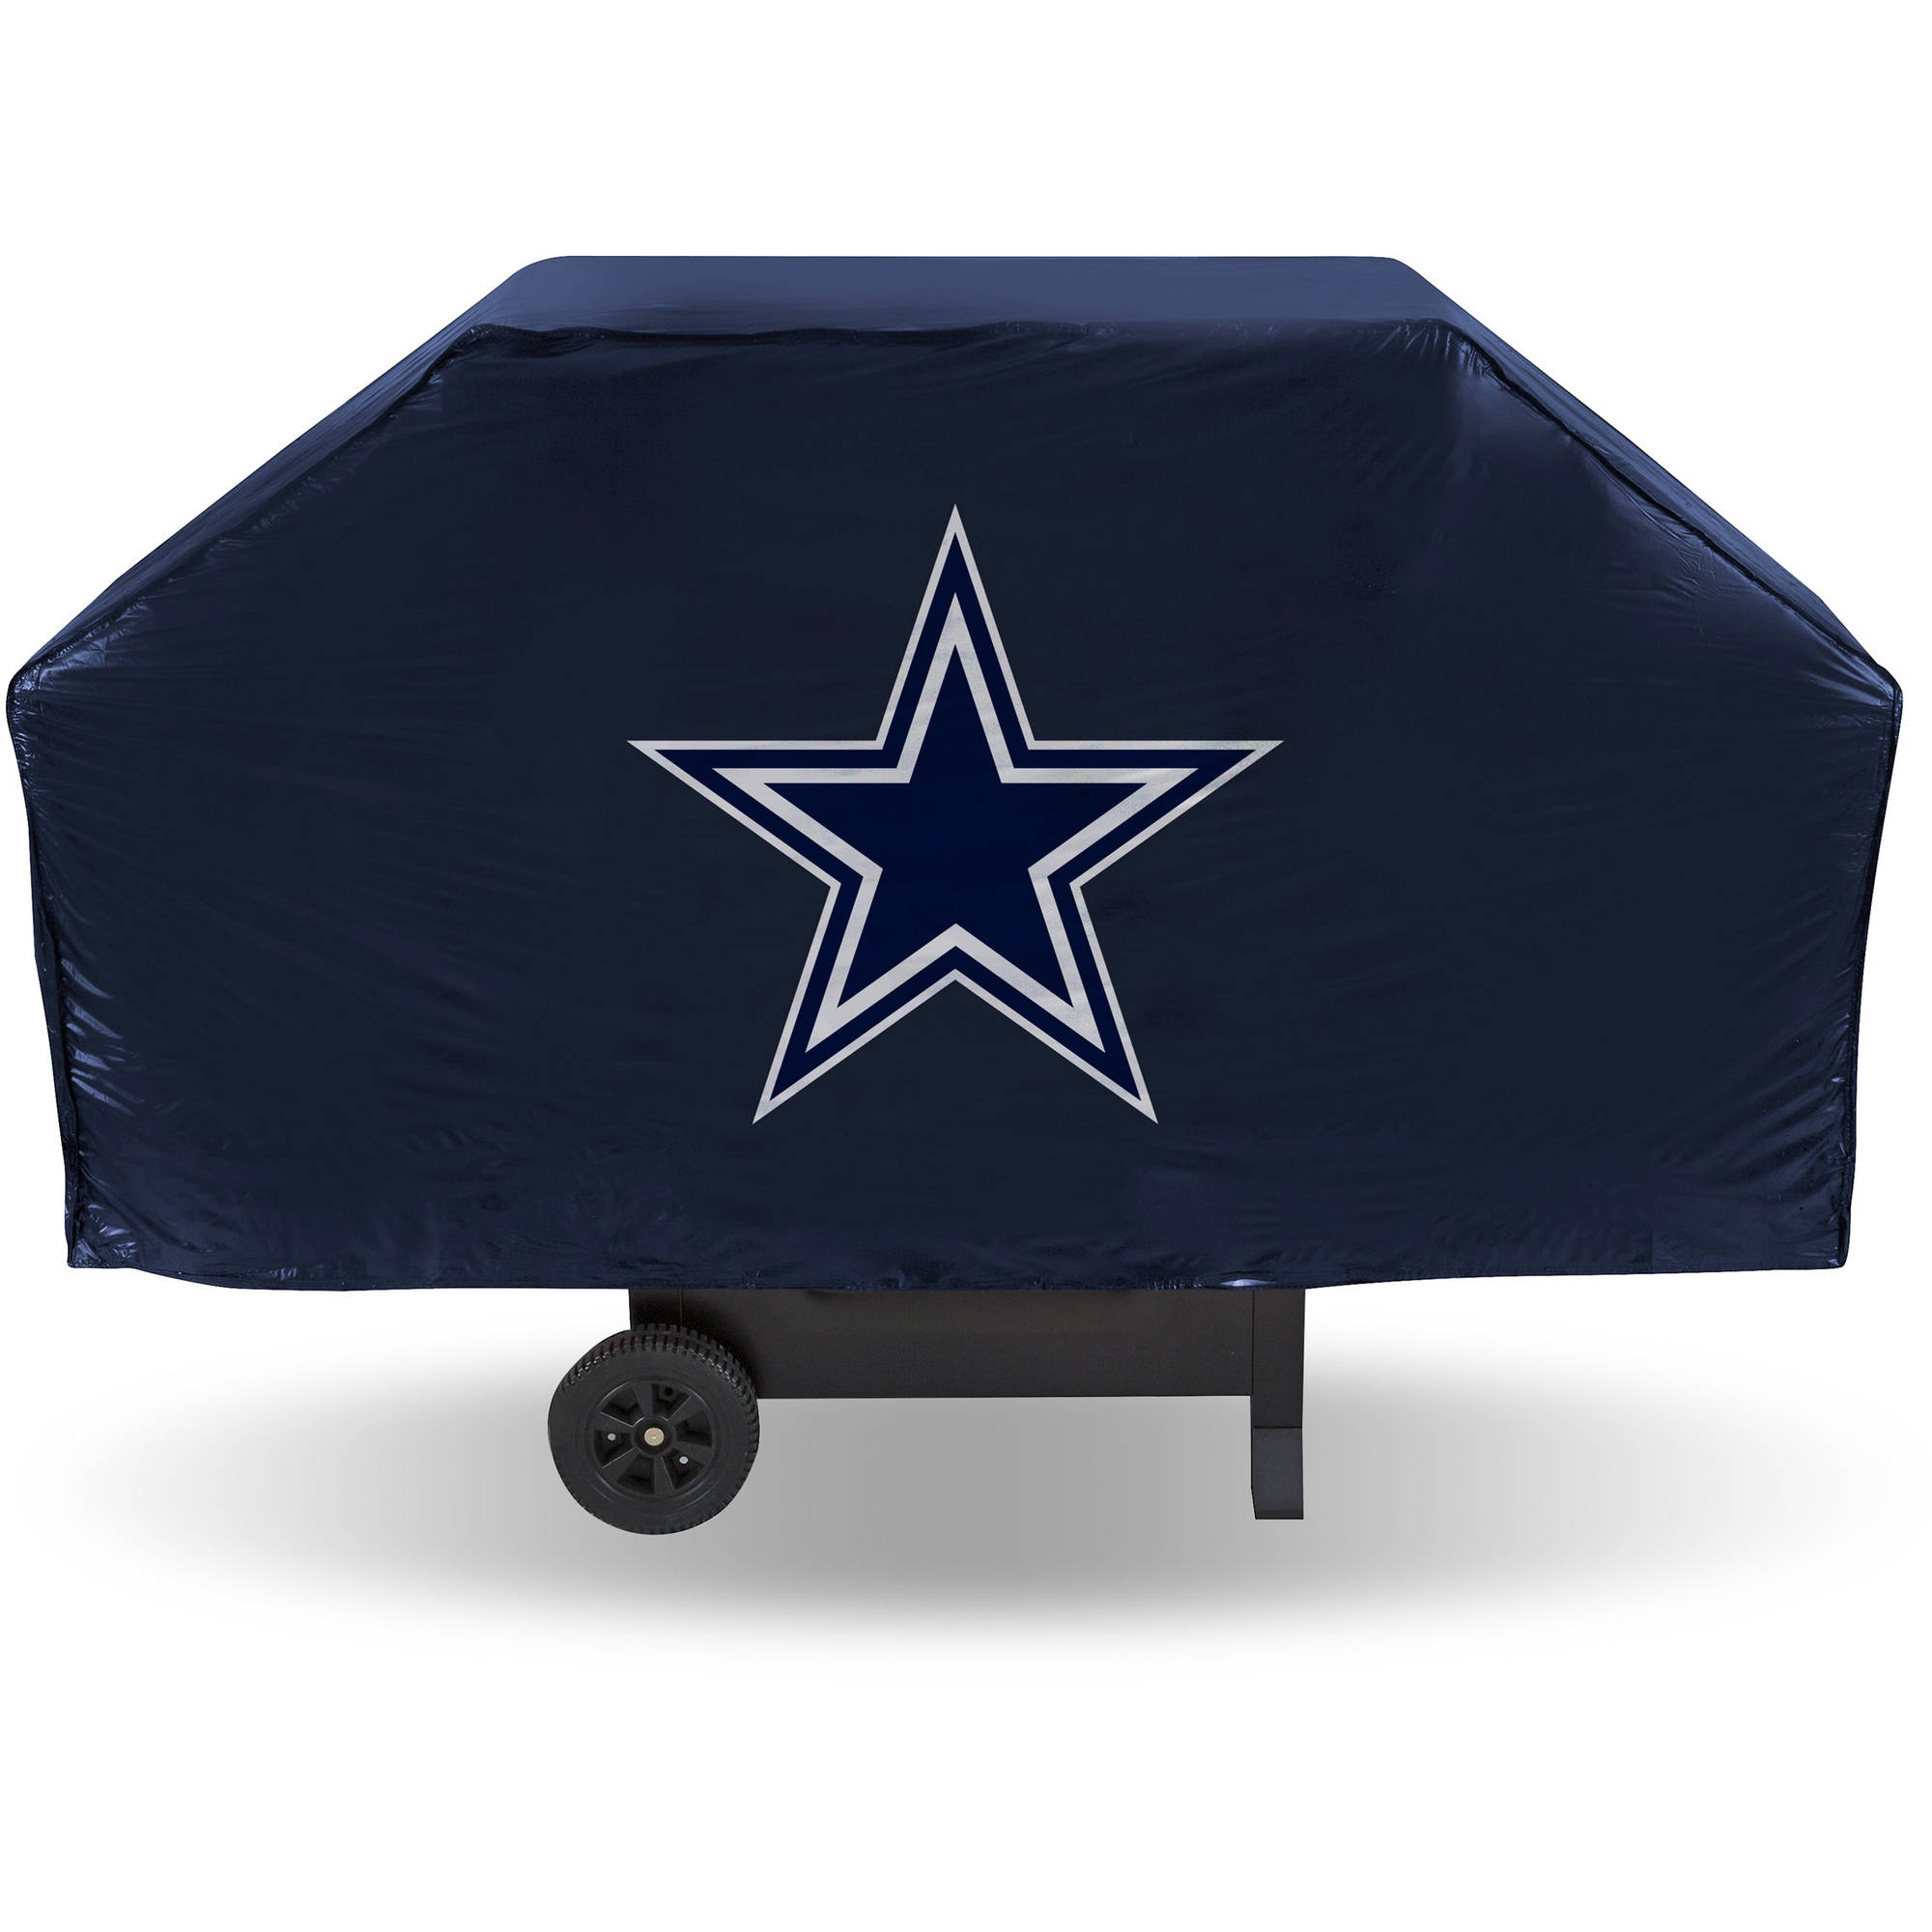 dallas cowboys chair cover upholstered vintage chairs biggsports on walmart seller reviews marketplace rating